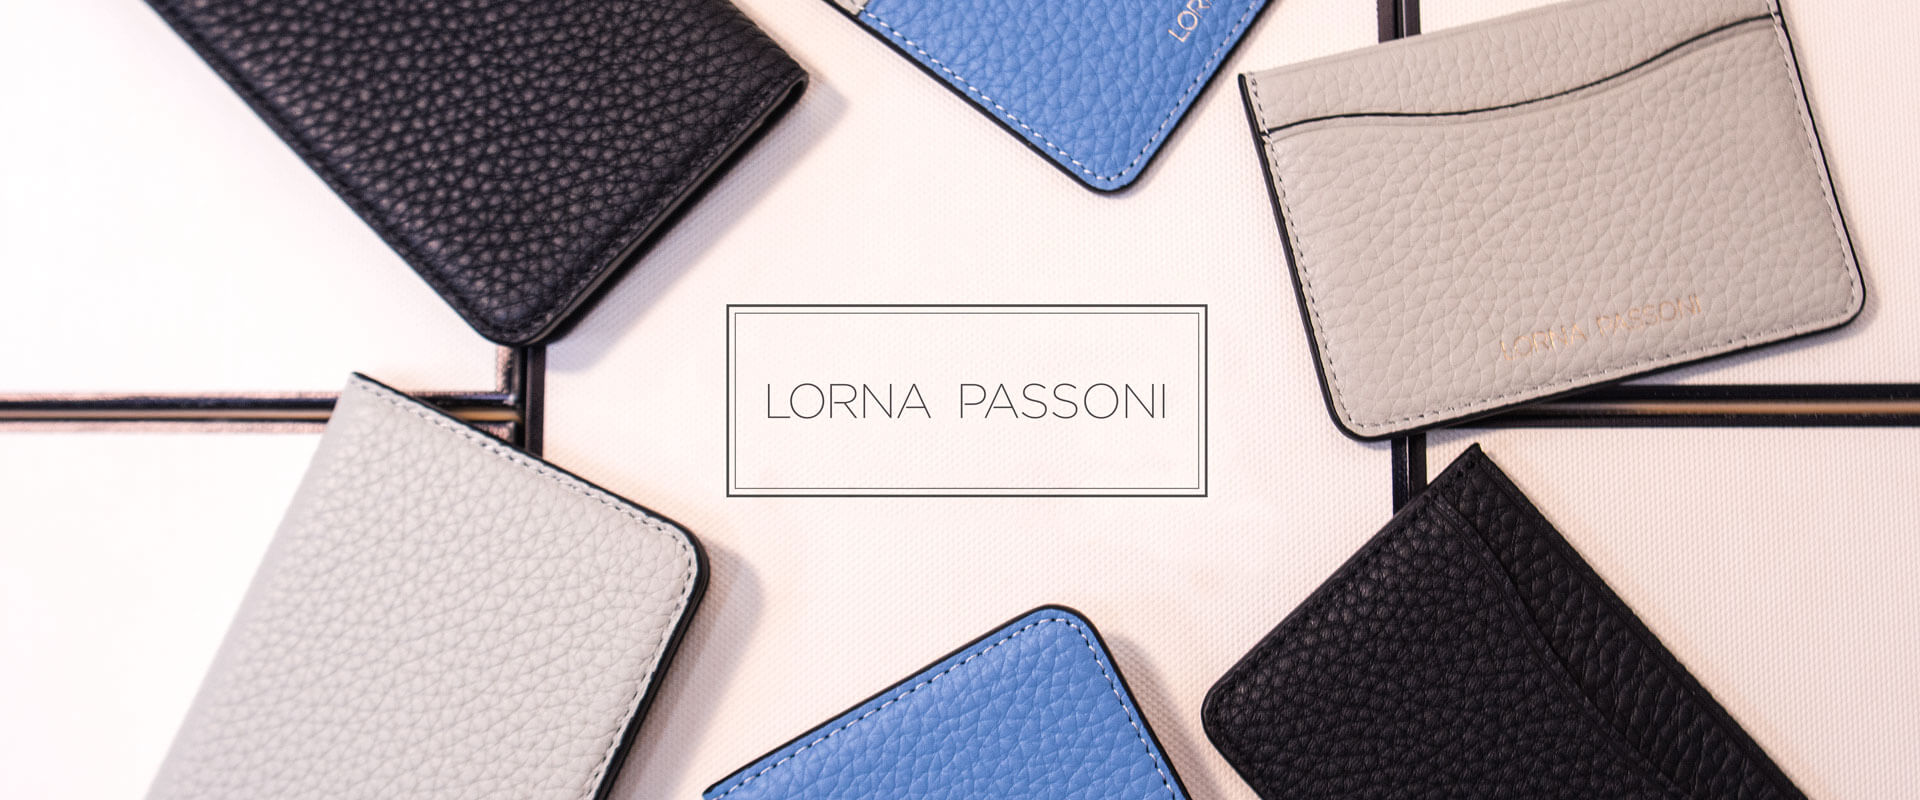 Accessory - LORNA PASSONI - Leather Folio Case for iPhone SE 第2世代/8/7 <1piu1uguale3>